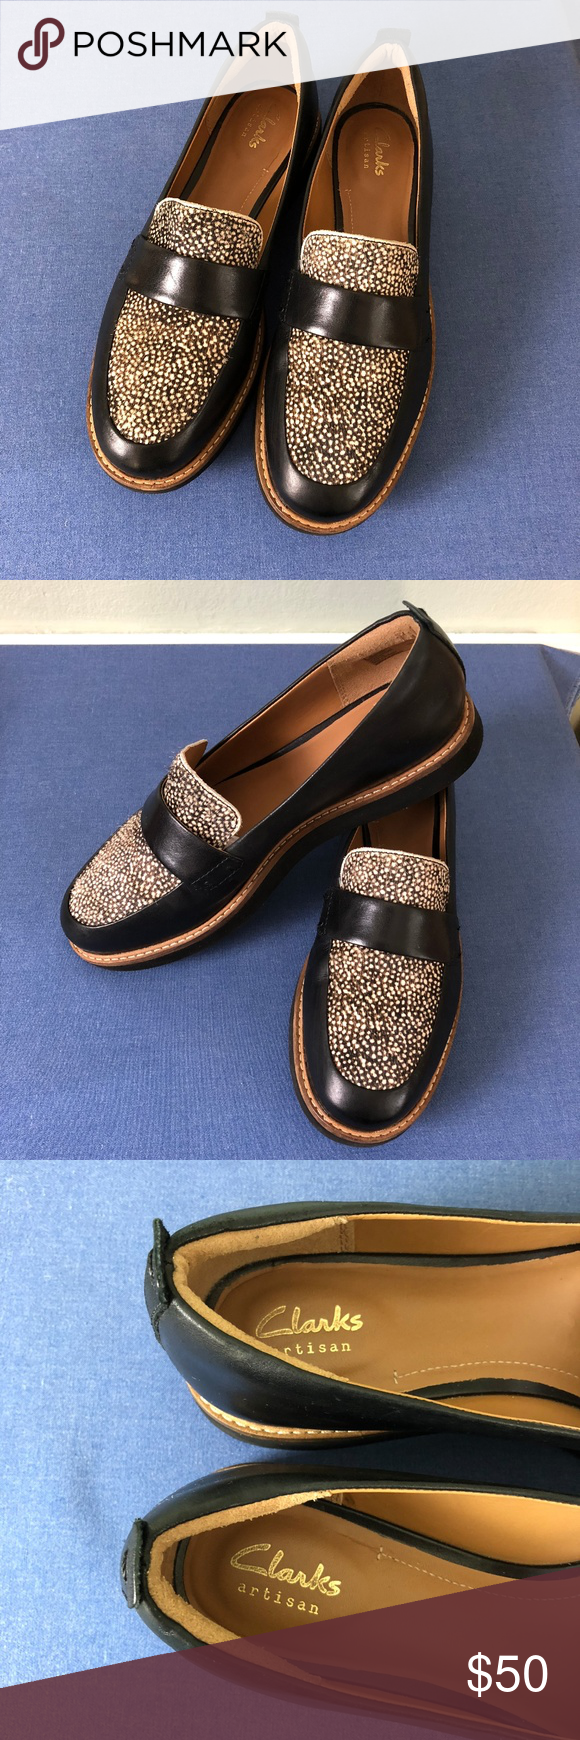 aaaefa8b673 clarks glick avalee leather loafers smart-looking   comfortable leather  loafers from clarks. black